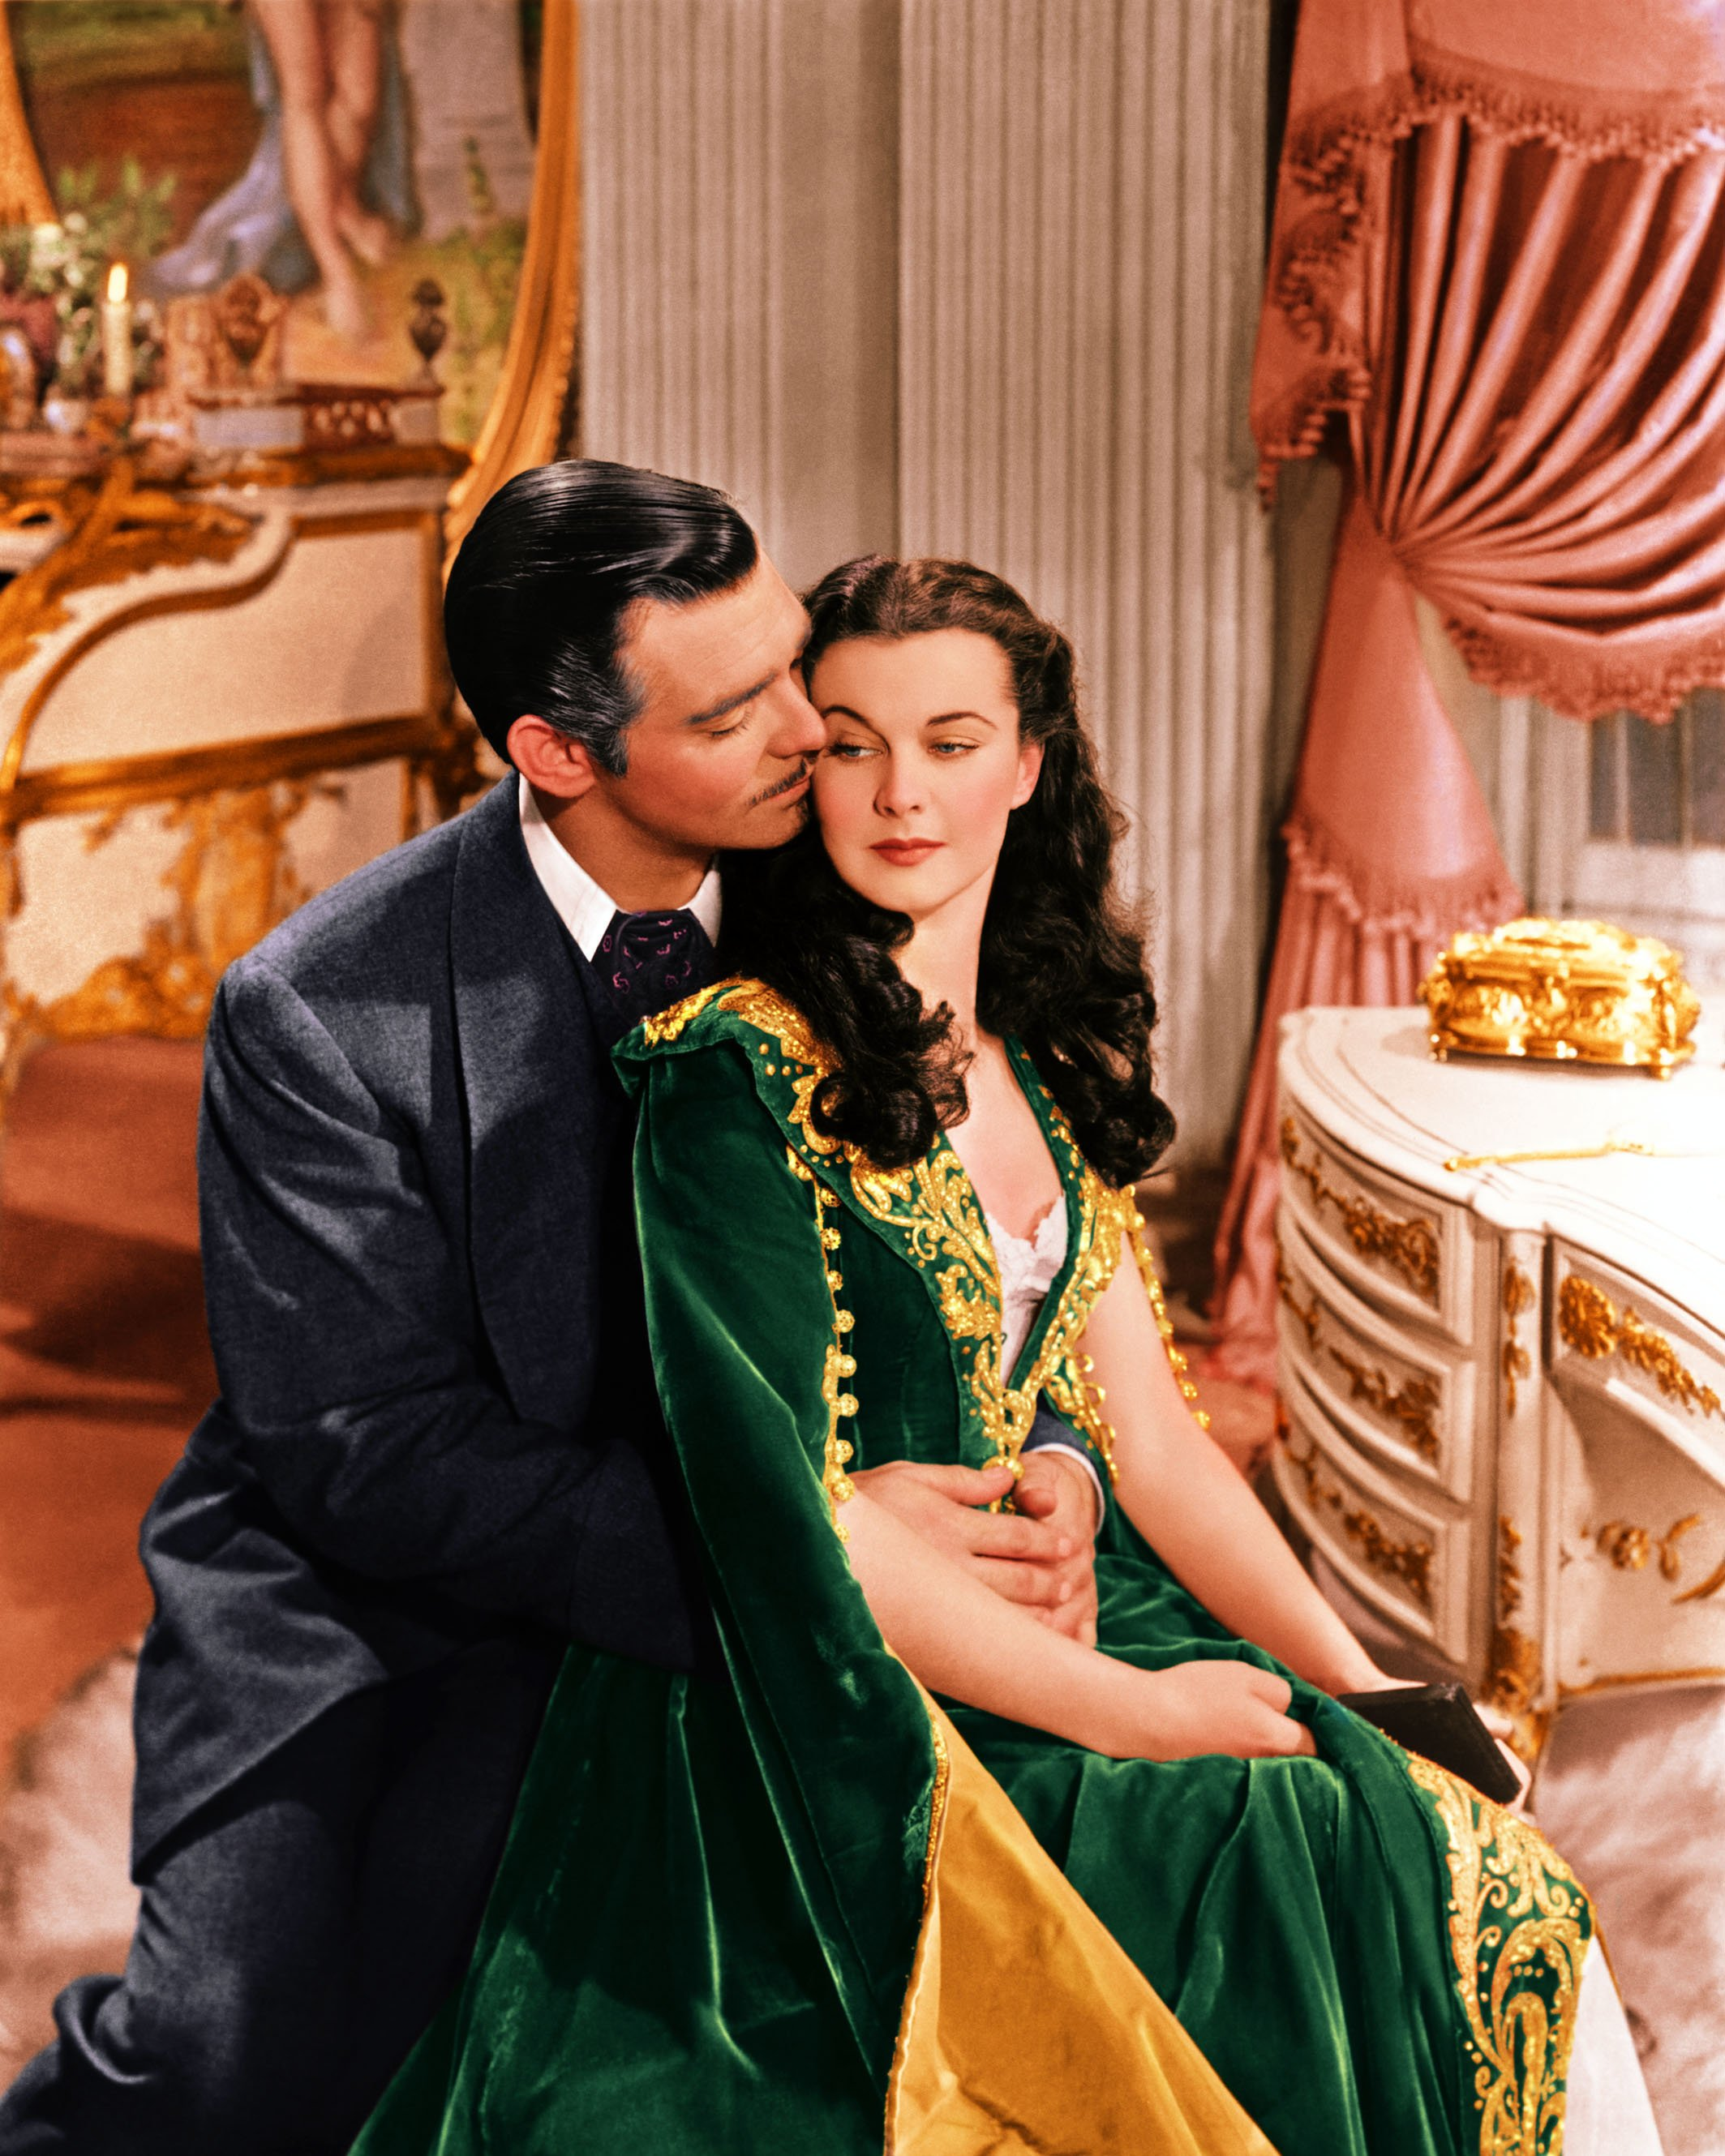 Clark Gable (1901–1960), US actor, and Vivien Leigh (1913-1967), British actress, in a publicity still issued for the film, 'Gone with the Wind', 1939. The drama, directed by Victor Fleming (1889-1949), starred Gable as 'Rhett Butler', and Leigh as 'Scarlett O'Hara'. | Source: Getty Images